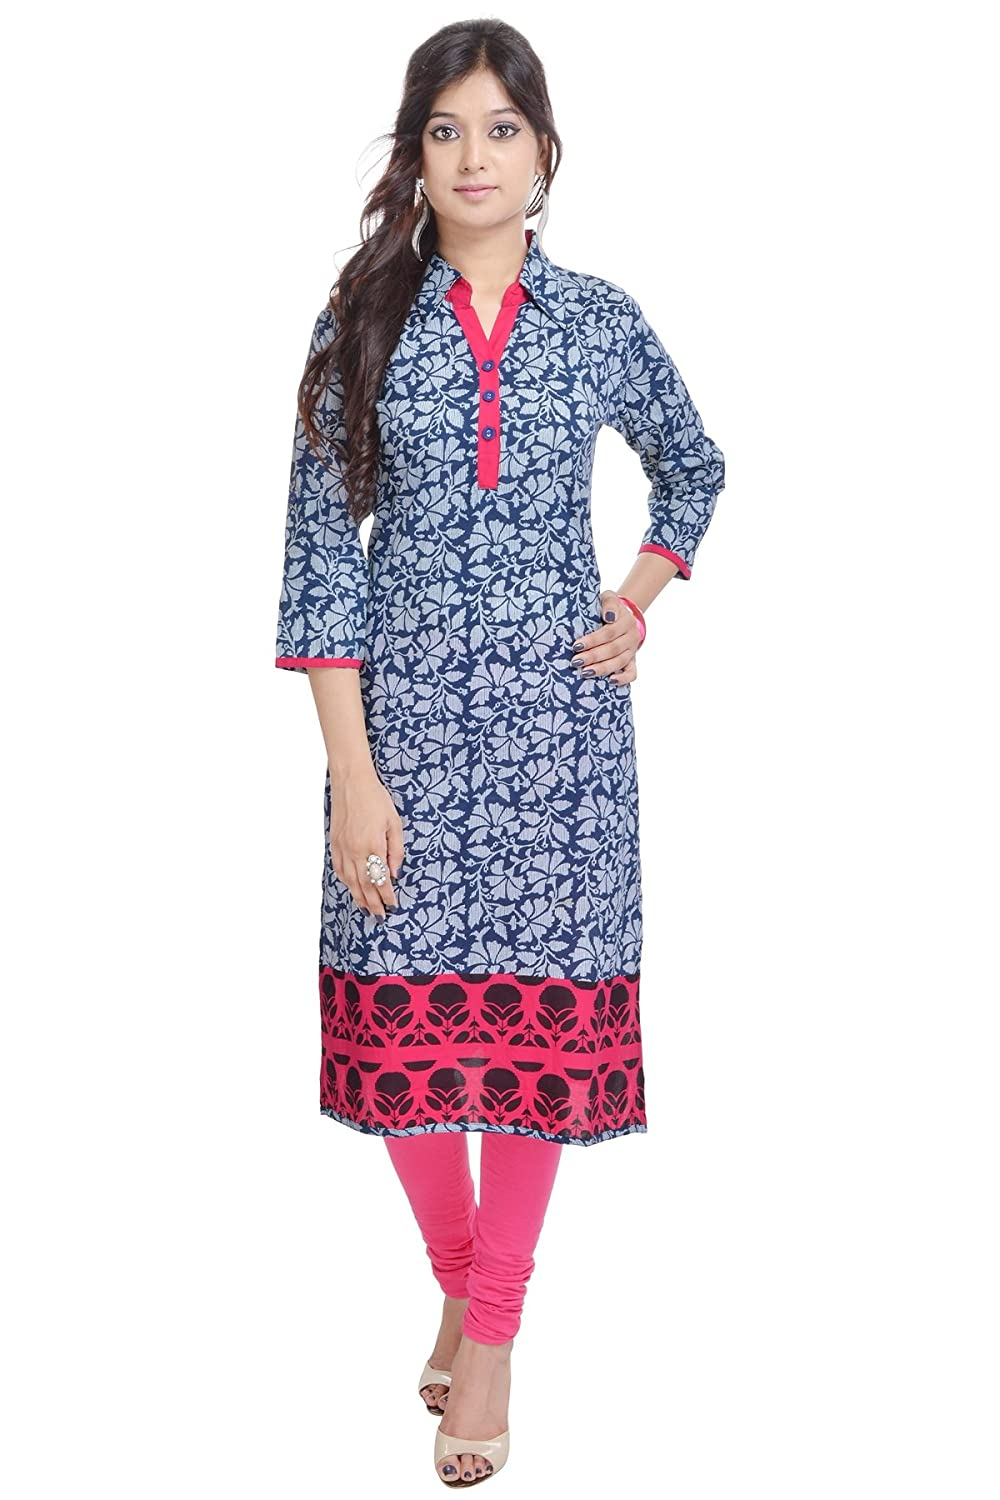 Vihaan Impex Indian Jaipuri Ladies Printed Designer Kurti VIKU2366_S